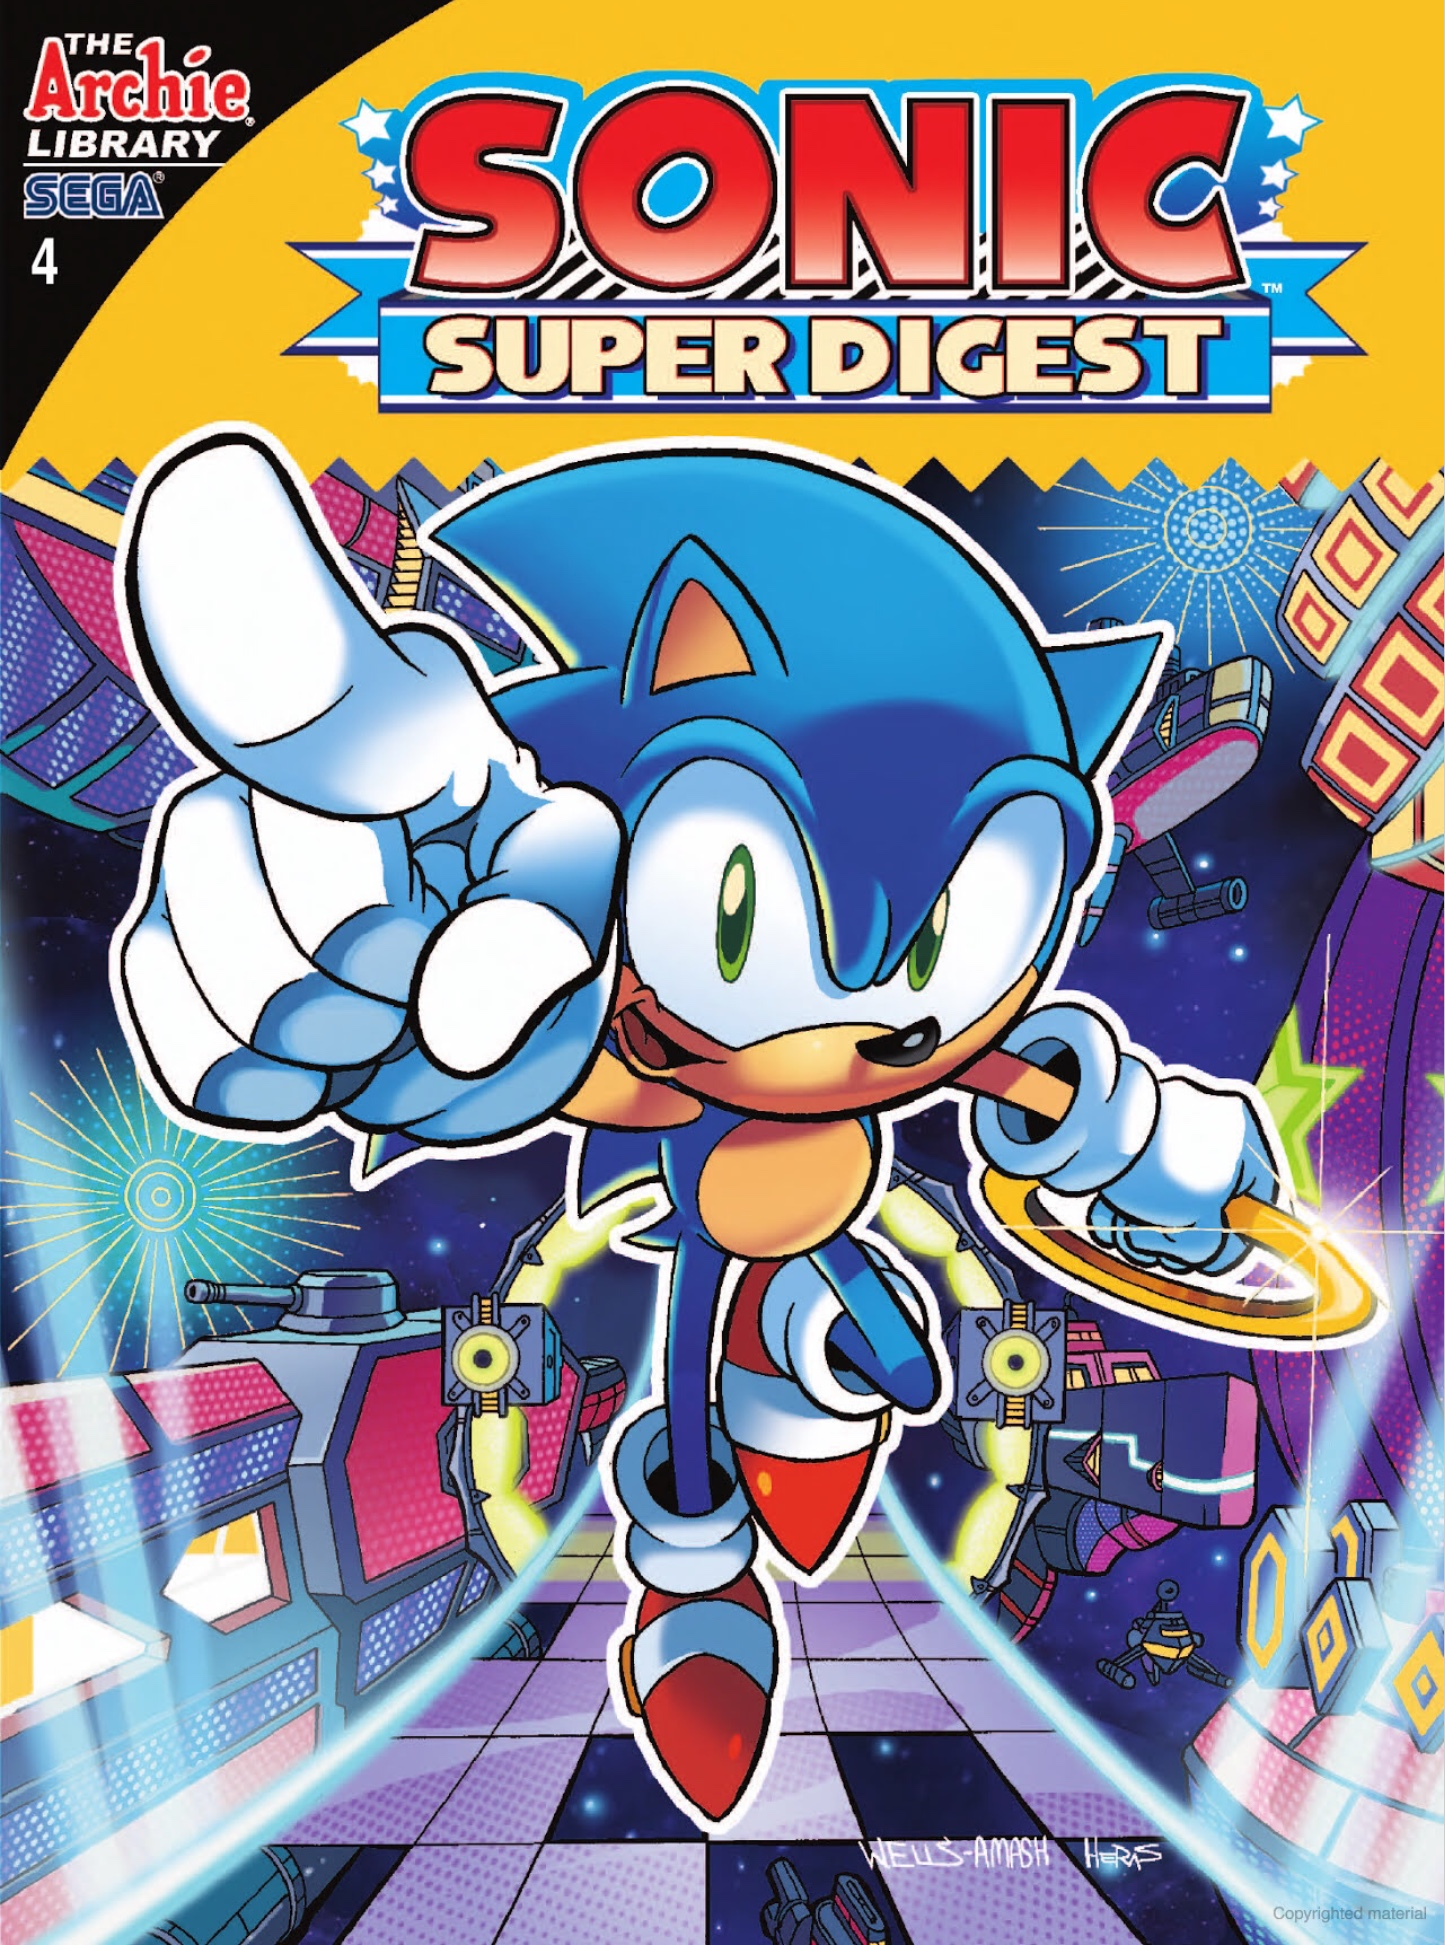 Archie Sonic Super Digest Issue 4 Sonic News Network